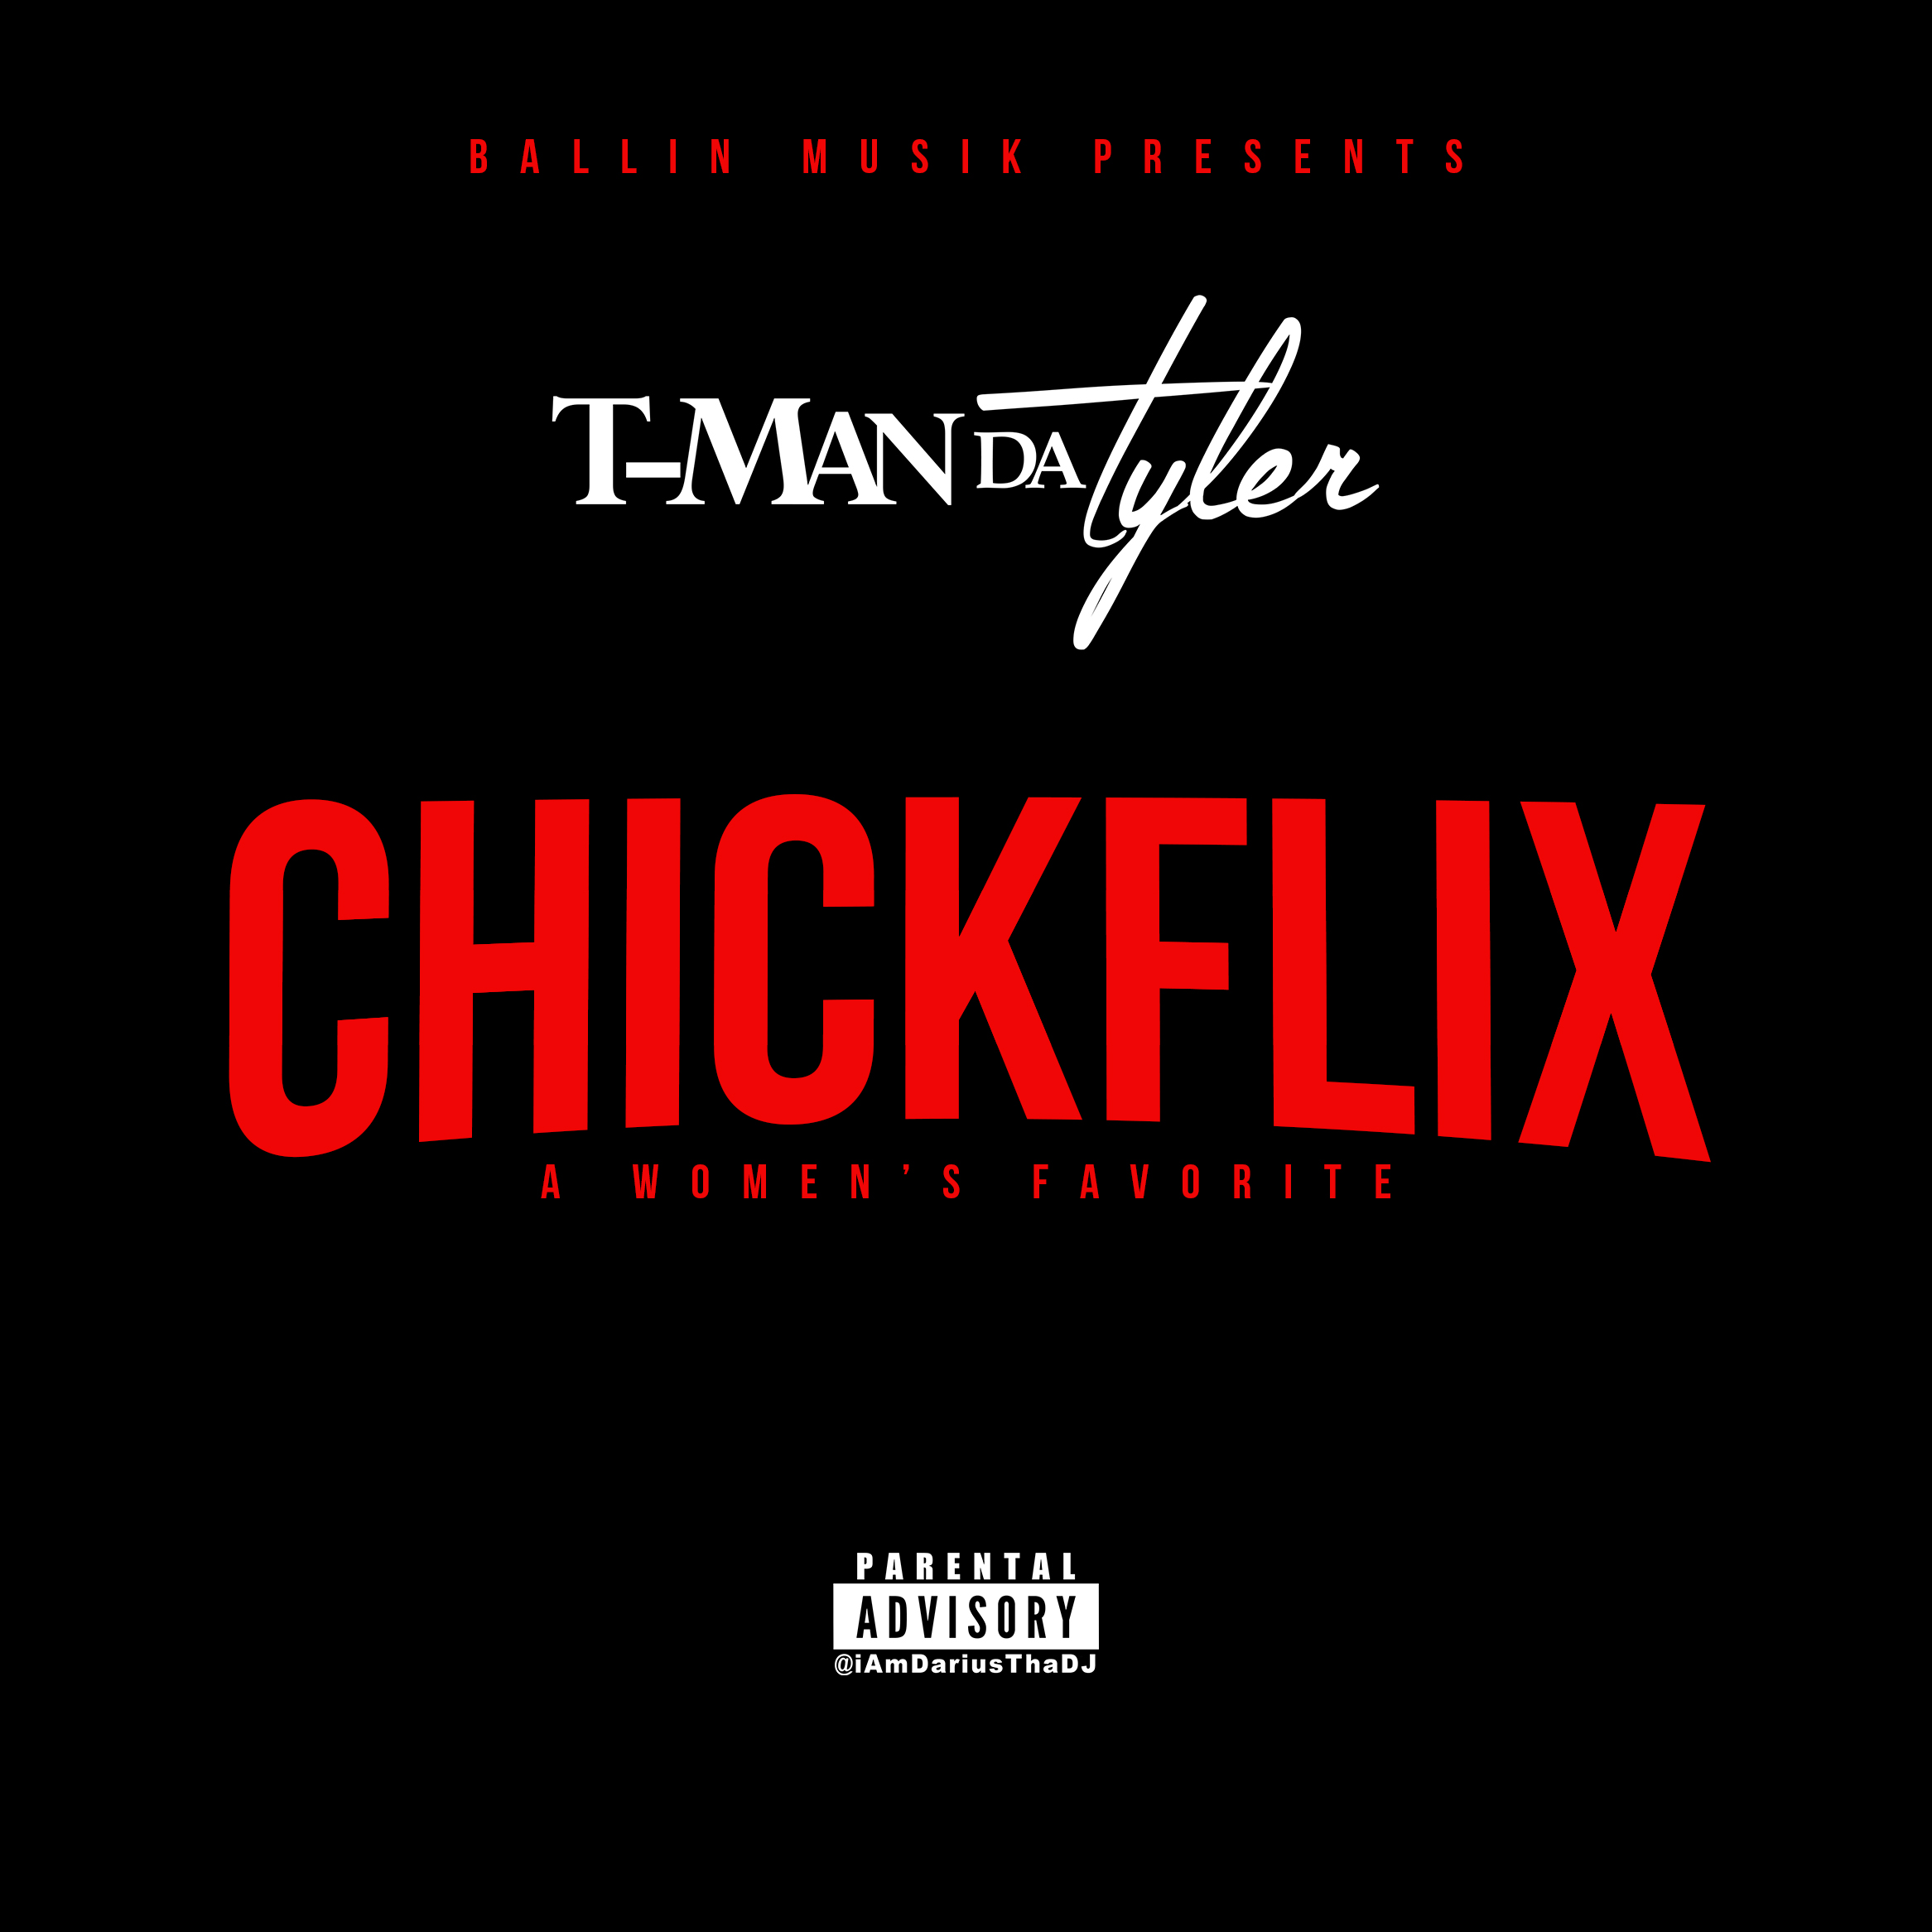 Chickflix T Man Da Tyler Front Cover